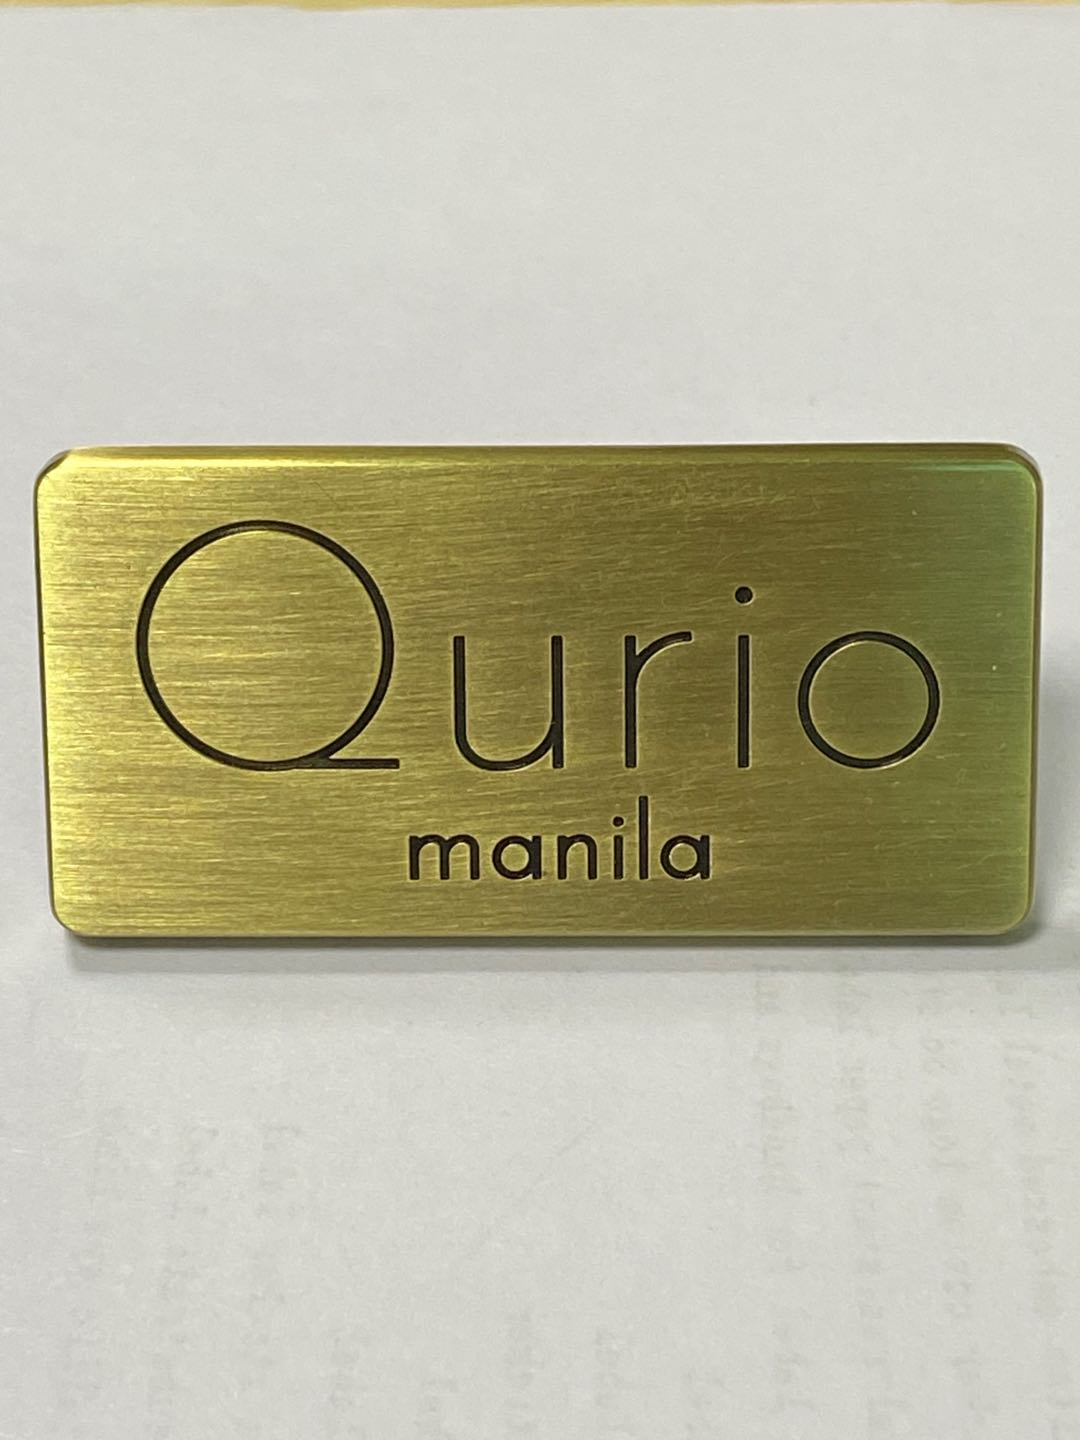 personalized metal label tags gold square fashion custom name tags with brand logo printing low moq